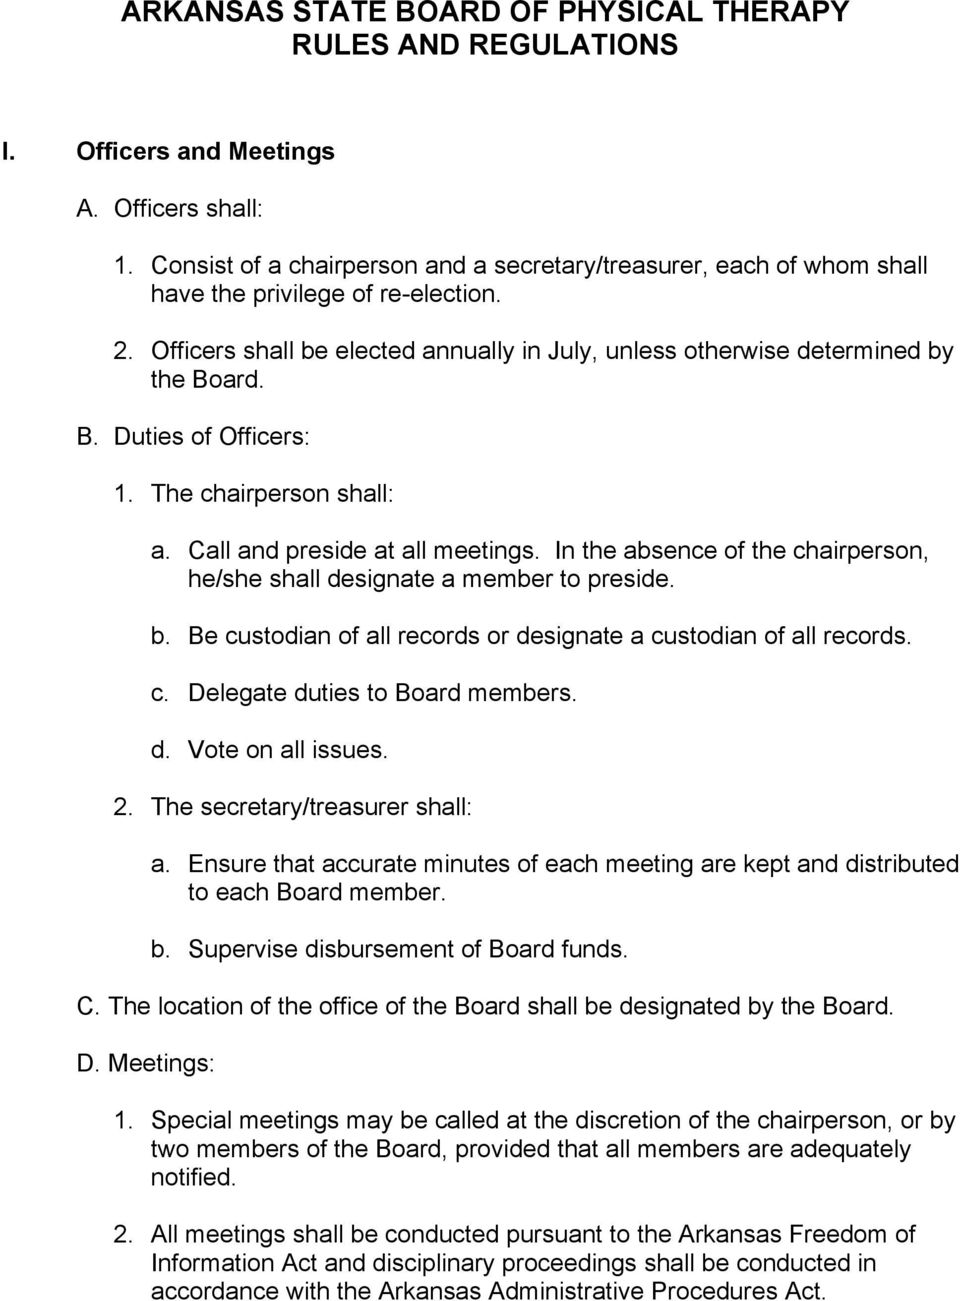 ard. B. Duties of Officers: 1. The chairperson shall: a. Call and preside at all meetings. In the absence of the chairperson, he/she shall designate a member to preside. b.